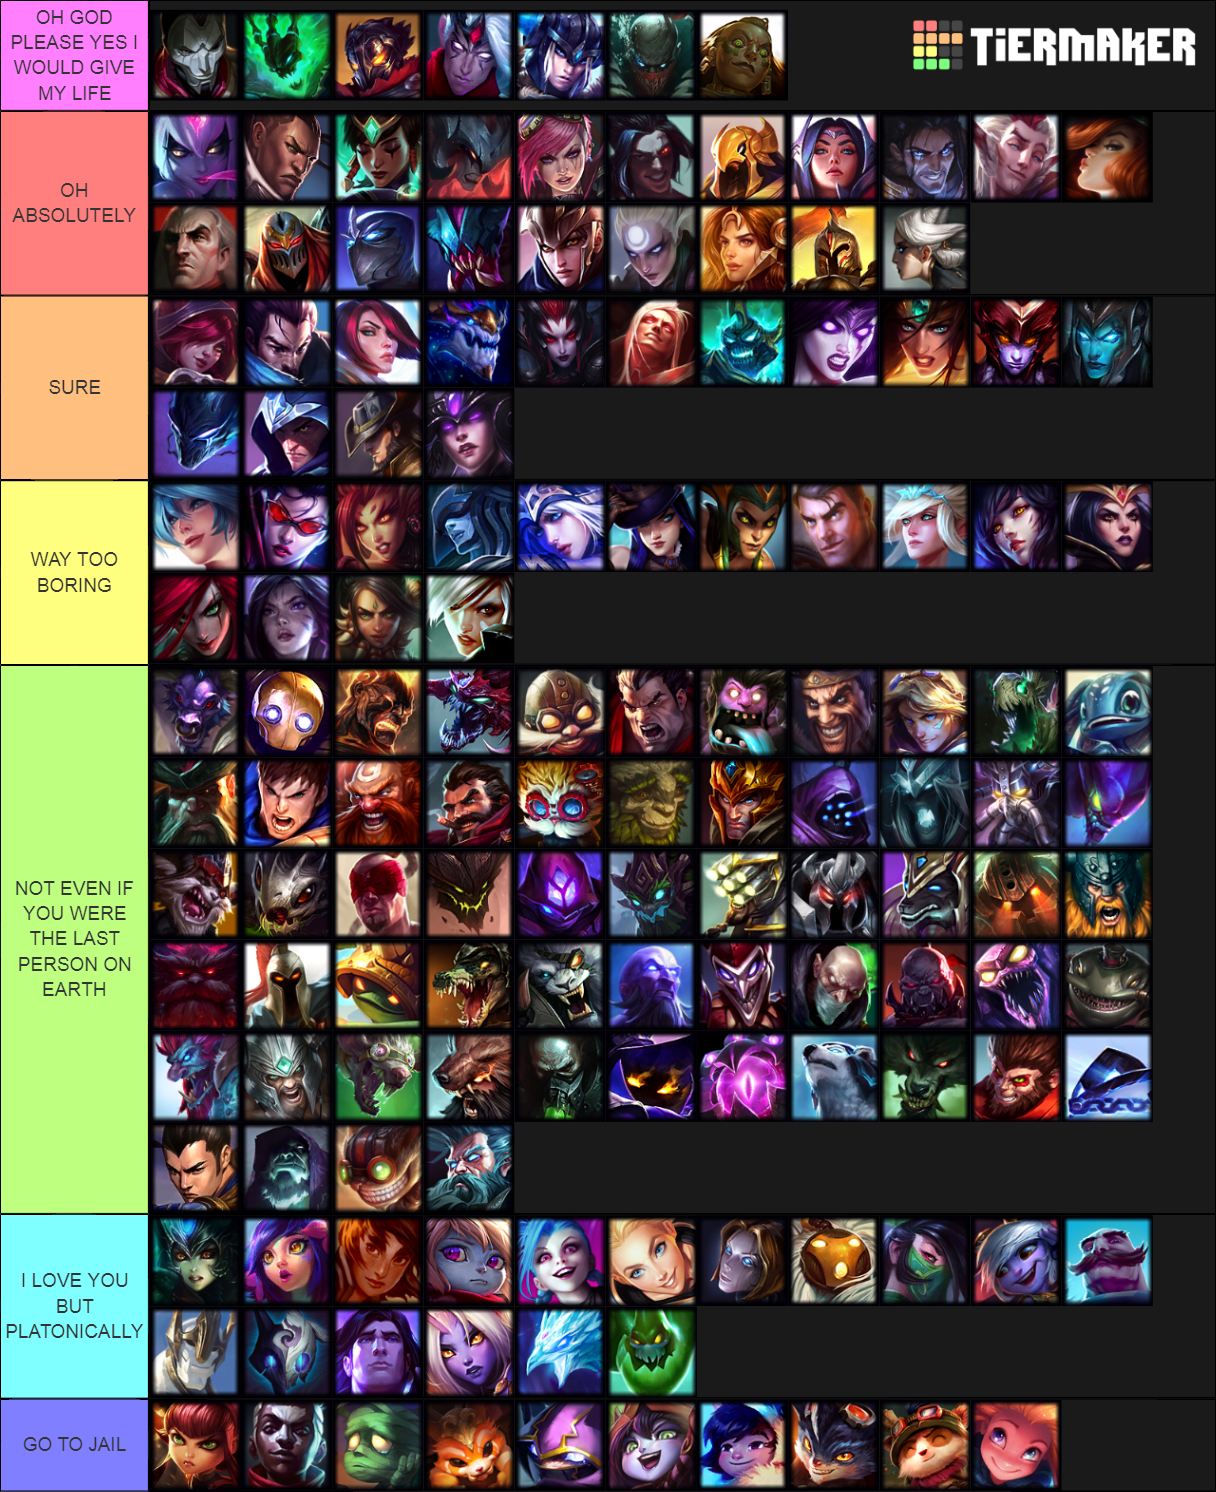 Let's all do a HOTNESS TIER LIST